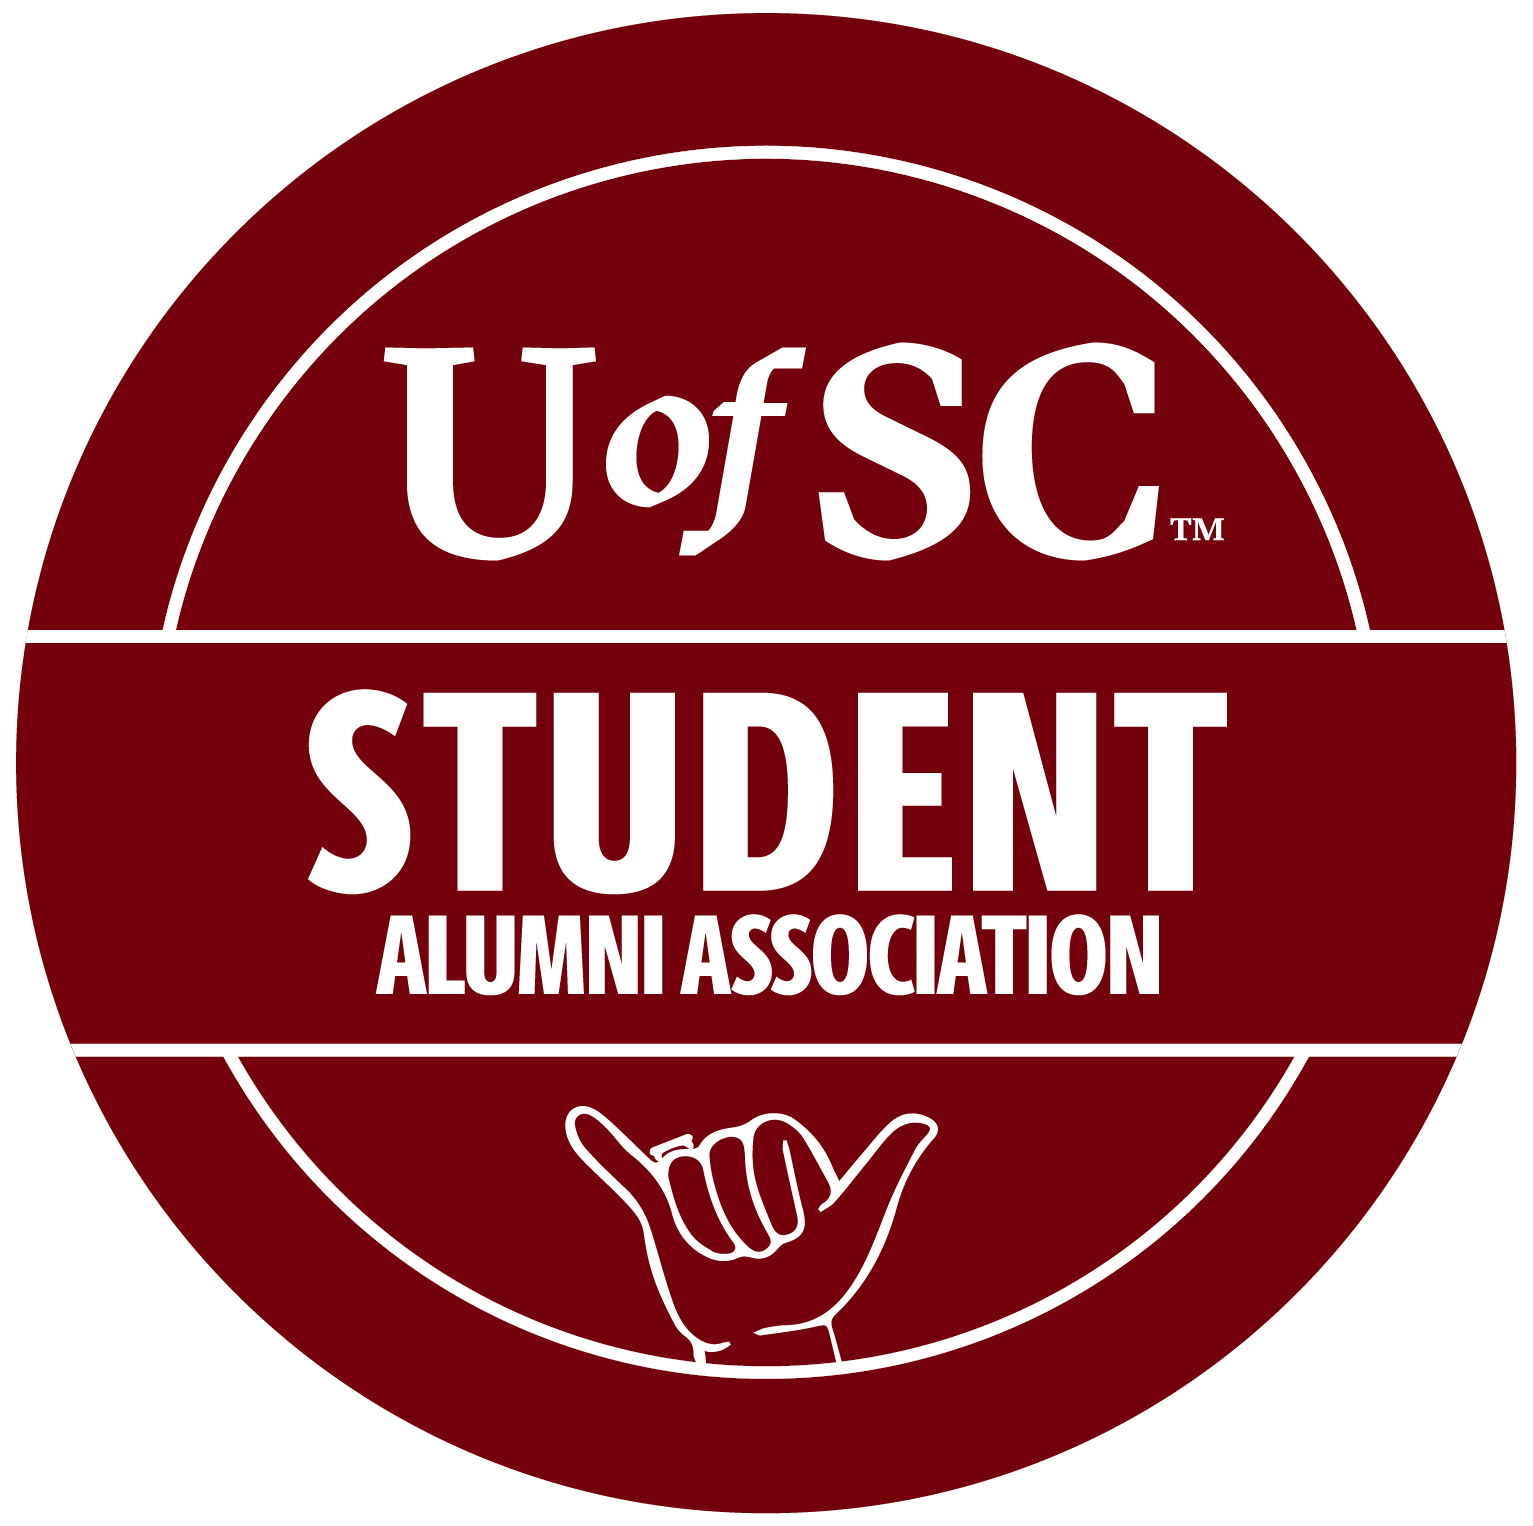 University of South Carolina Student Alumni Association